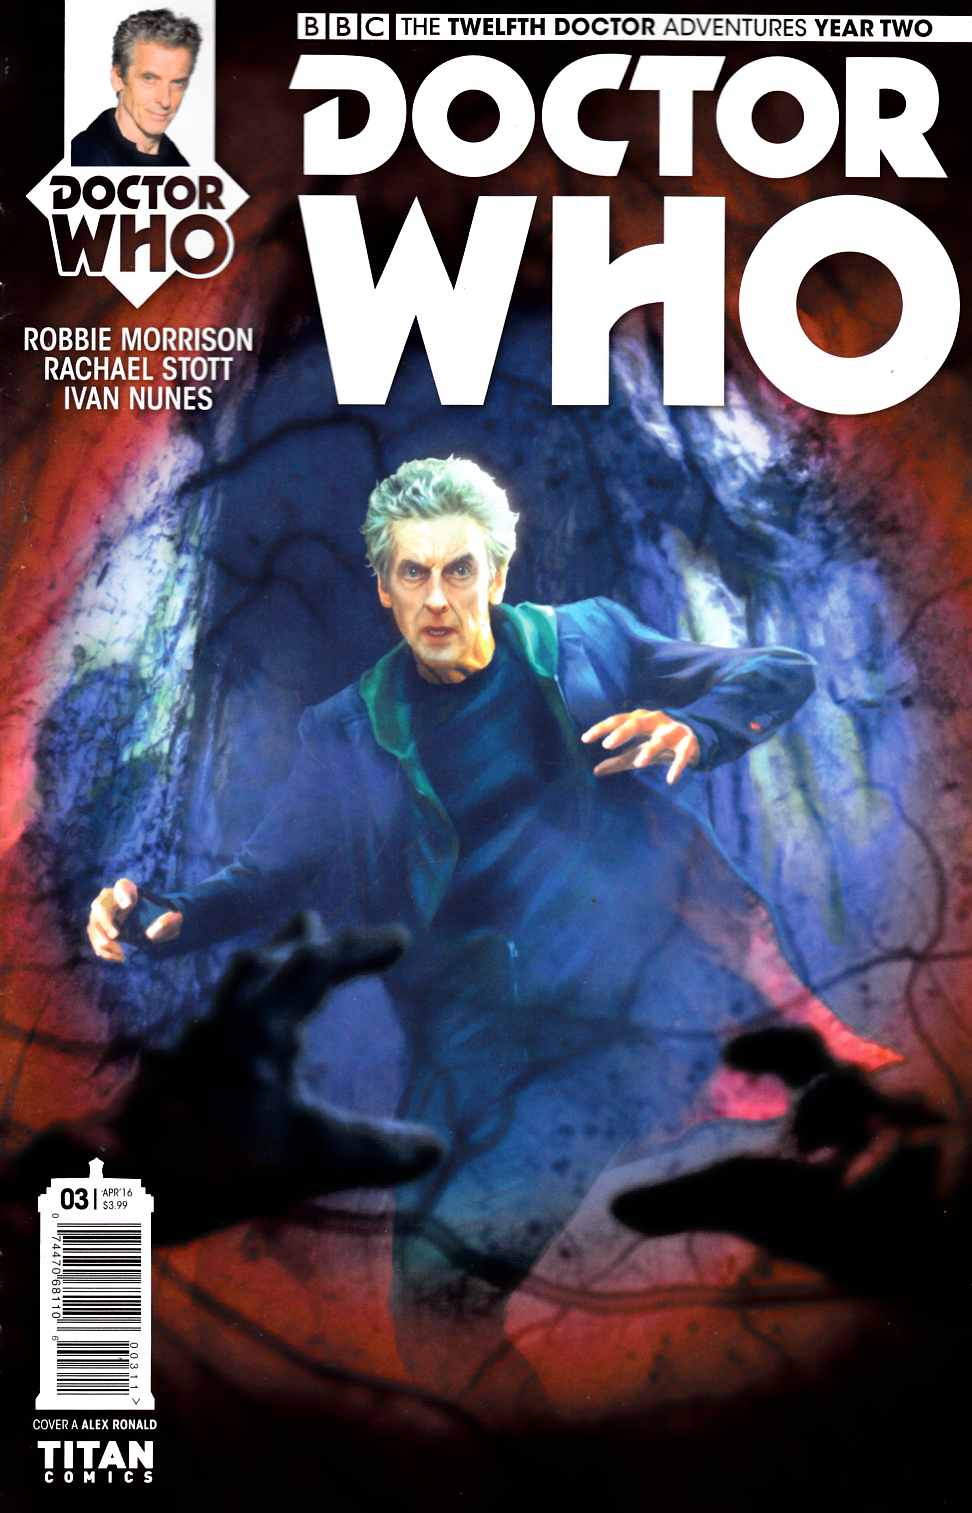 Doctor Who 12th Doctor Year Two #3 Cover A- Ronald [Titan Comic] THUMBNAIL